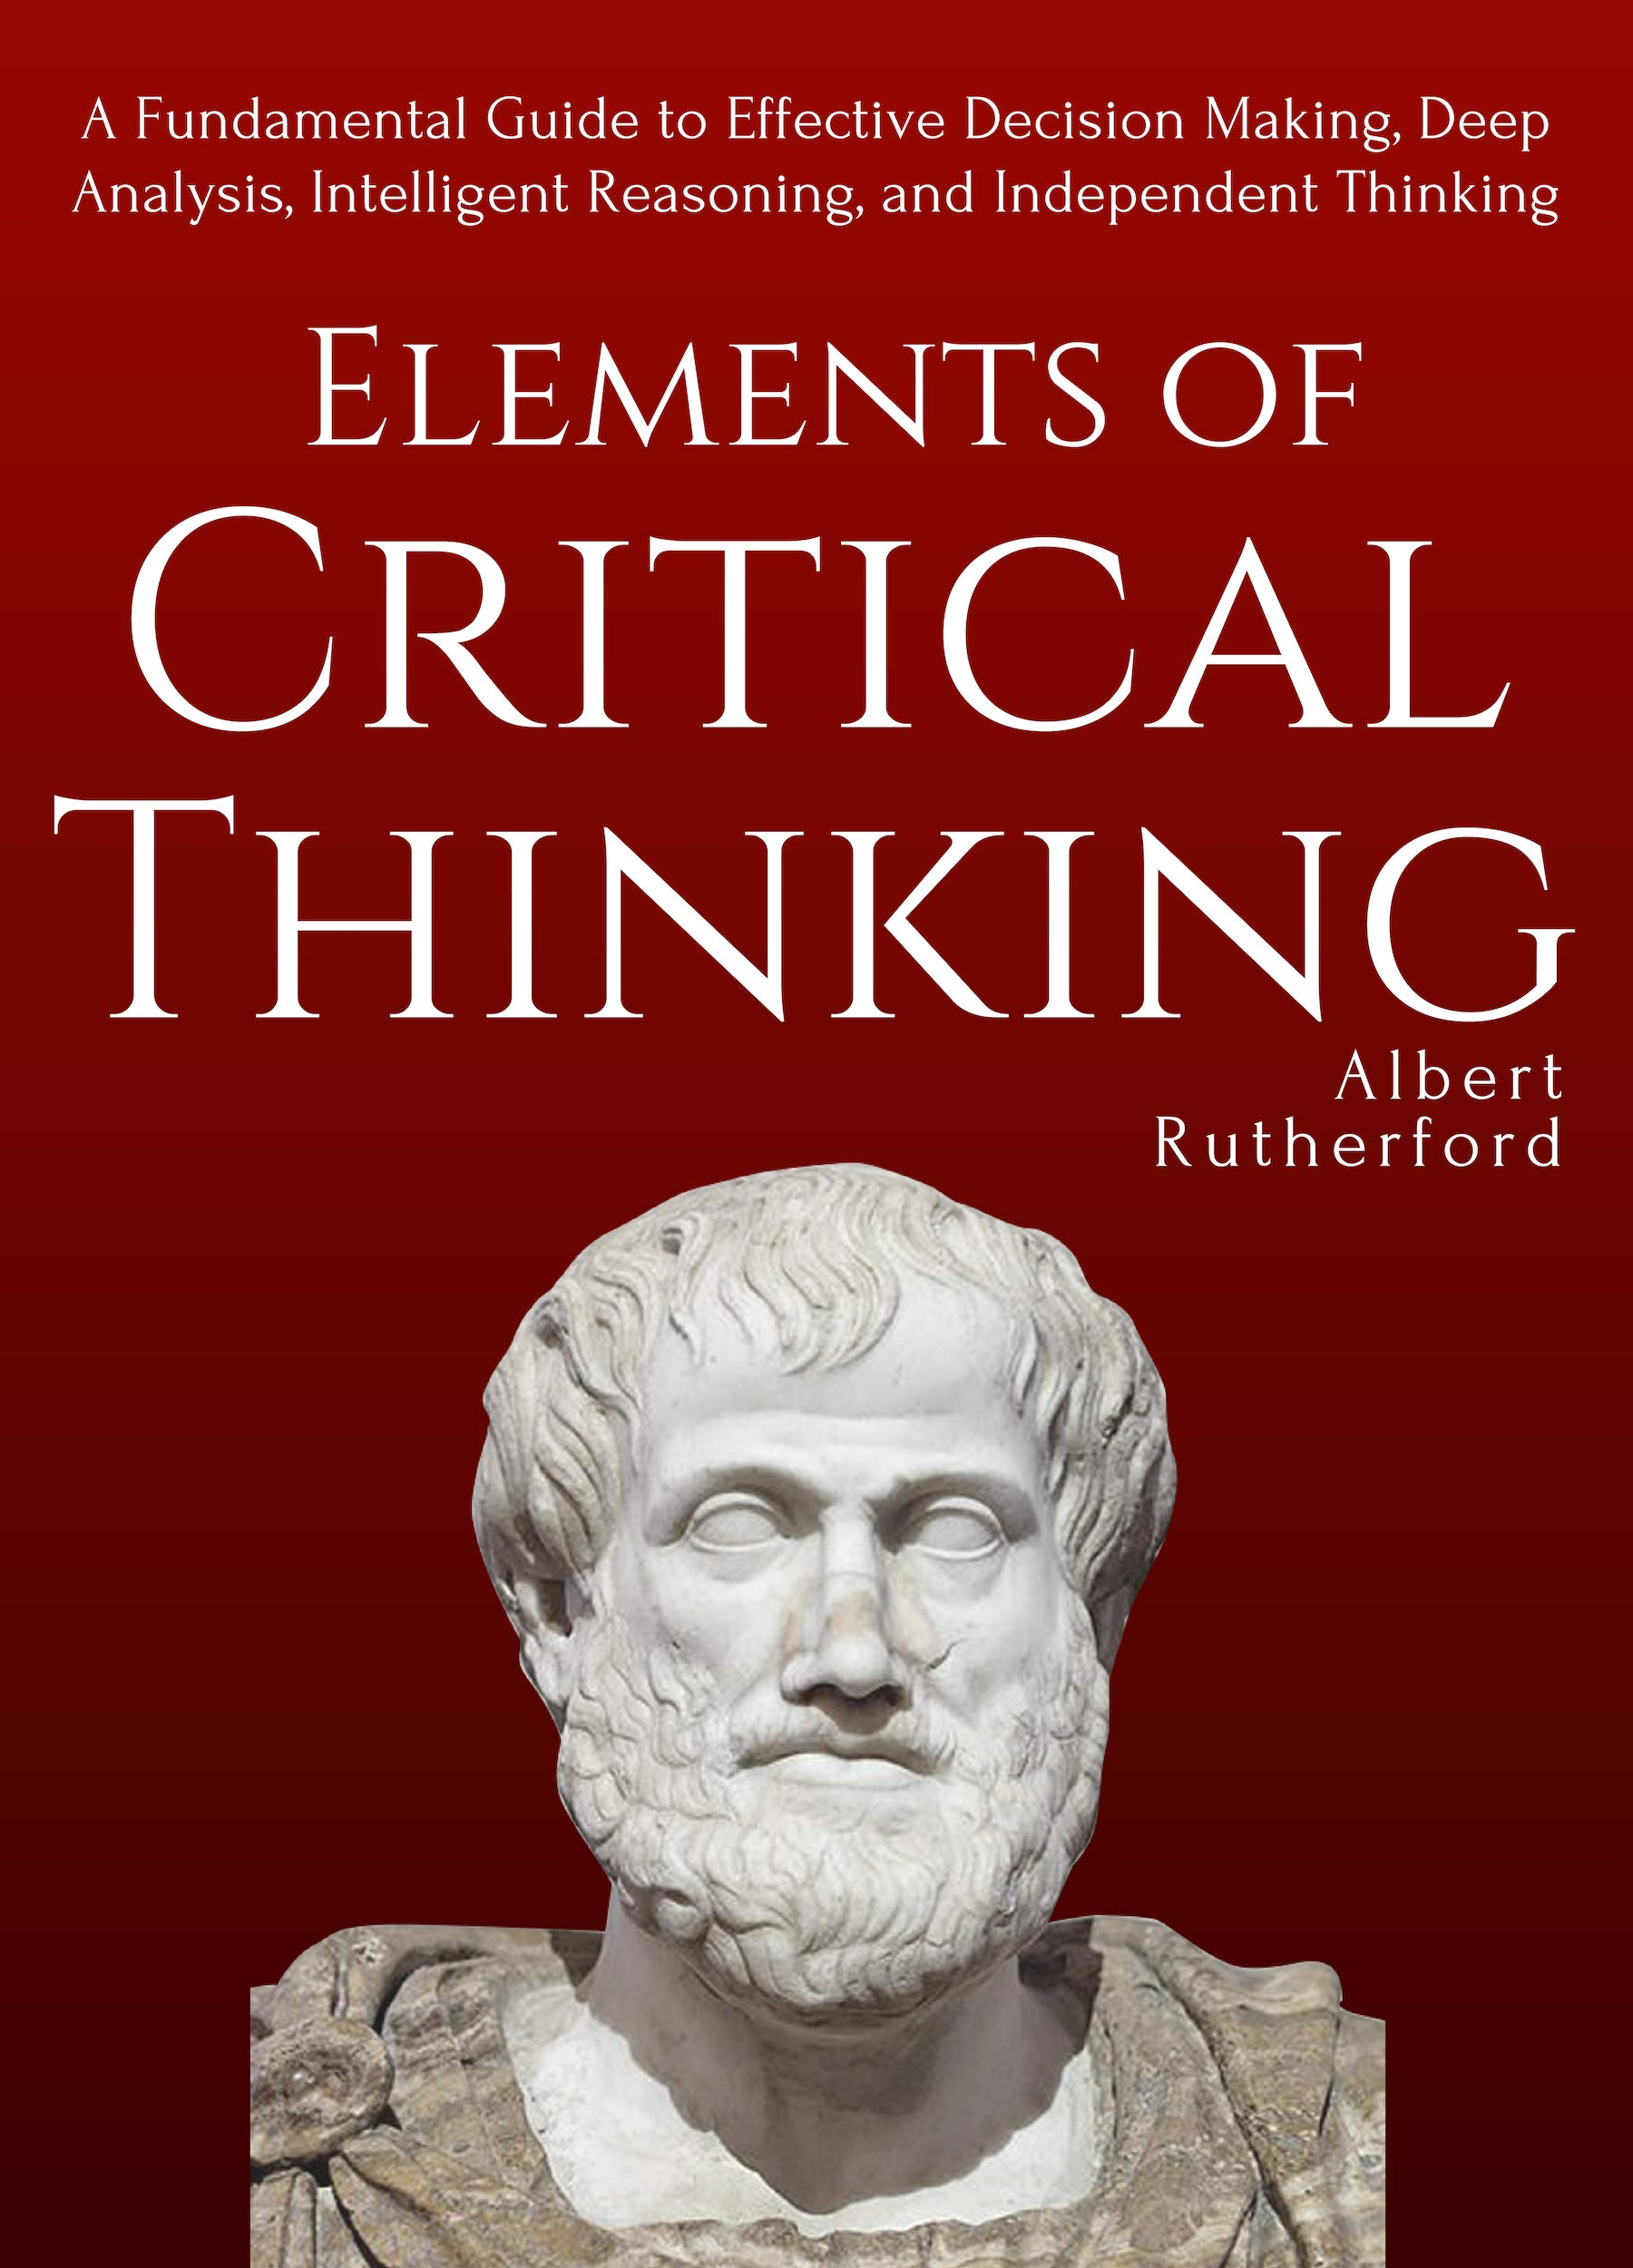 Elements of Critical Thinking: A Fundamental Guide to Effective Decision Making, Deep Analysis, Intelligent Reasoning, and Independent Thinking